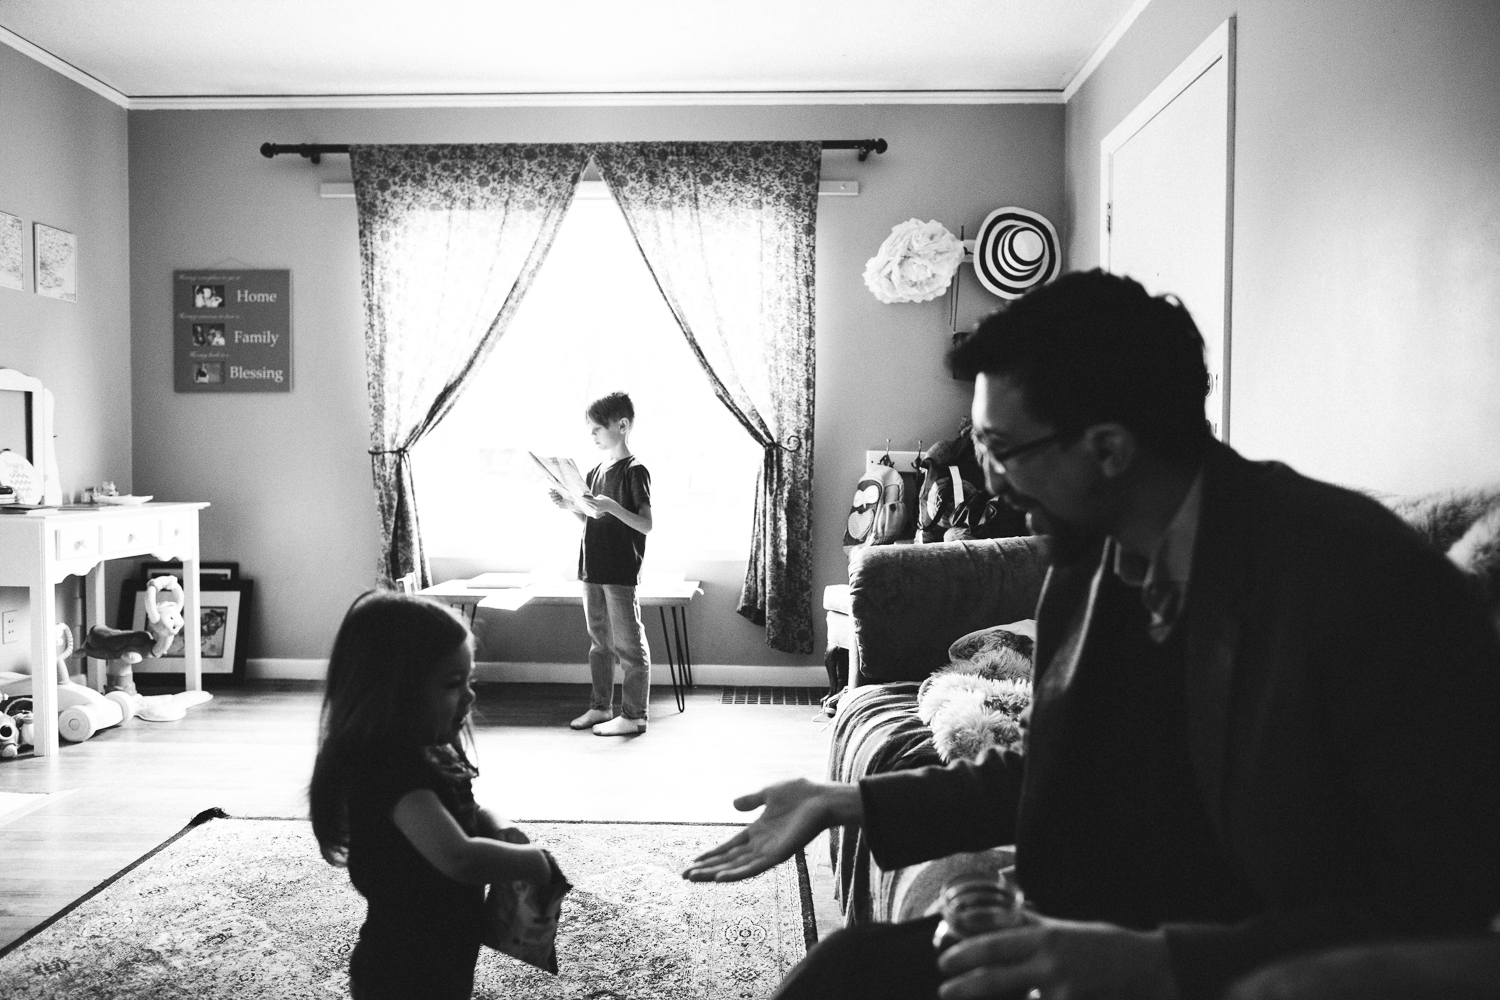 dad giving daughter a high-five